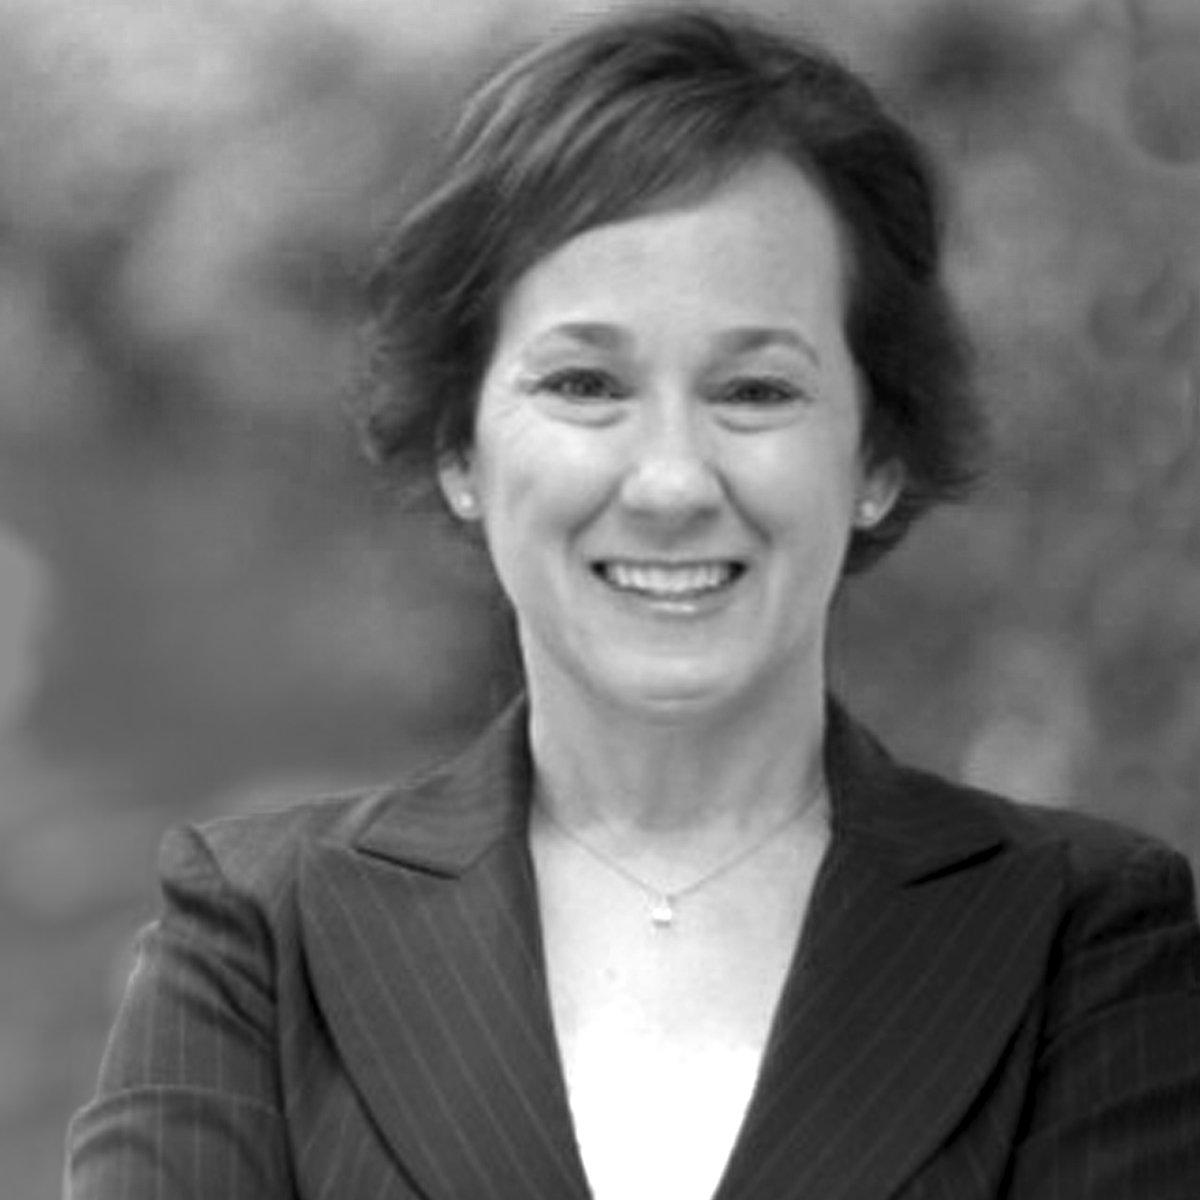 Lisa Vioni, Chief Executive Officer, Hedge Connection; Board Member, High Water Women